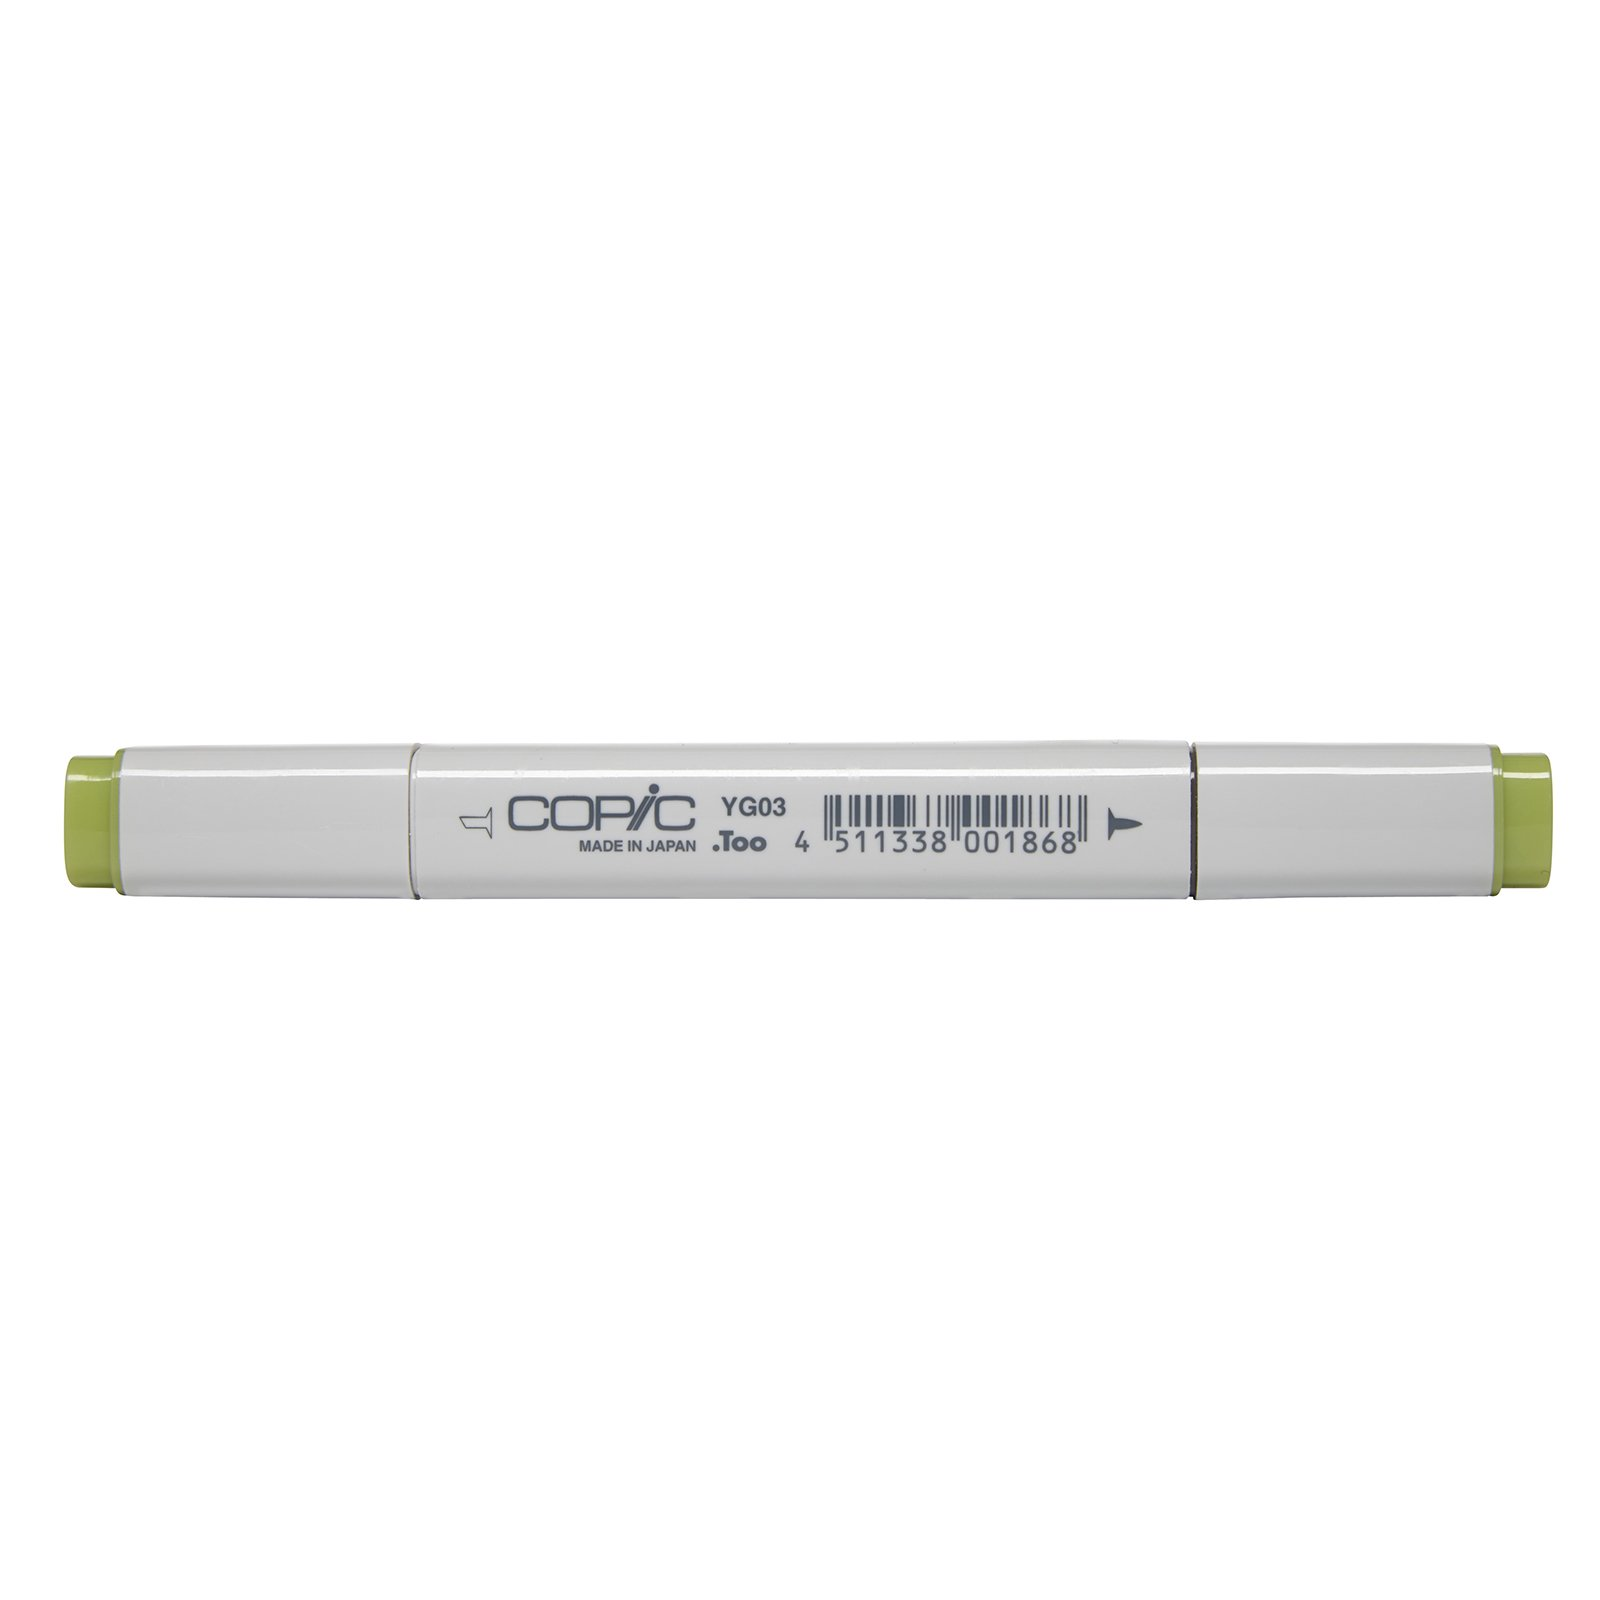 Copic Marker with Replaceable Nib, YG03-Copic, Yellow Green